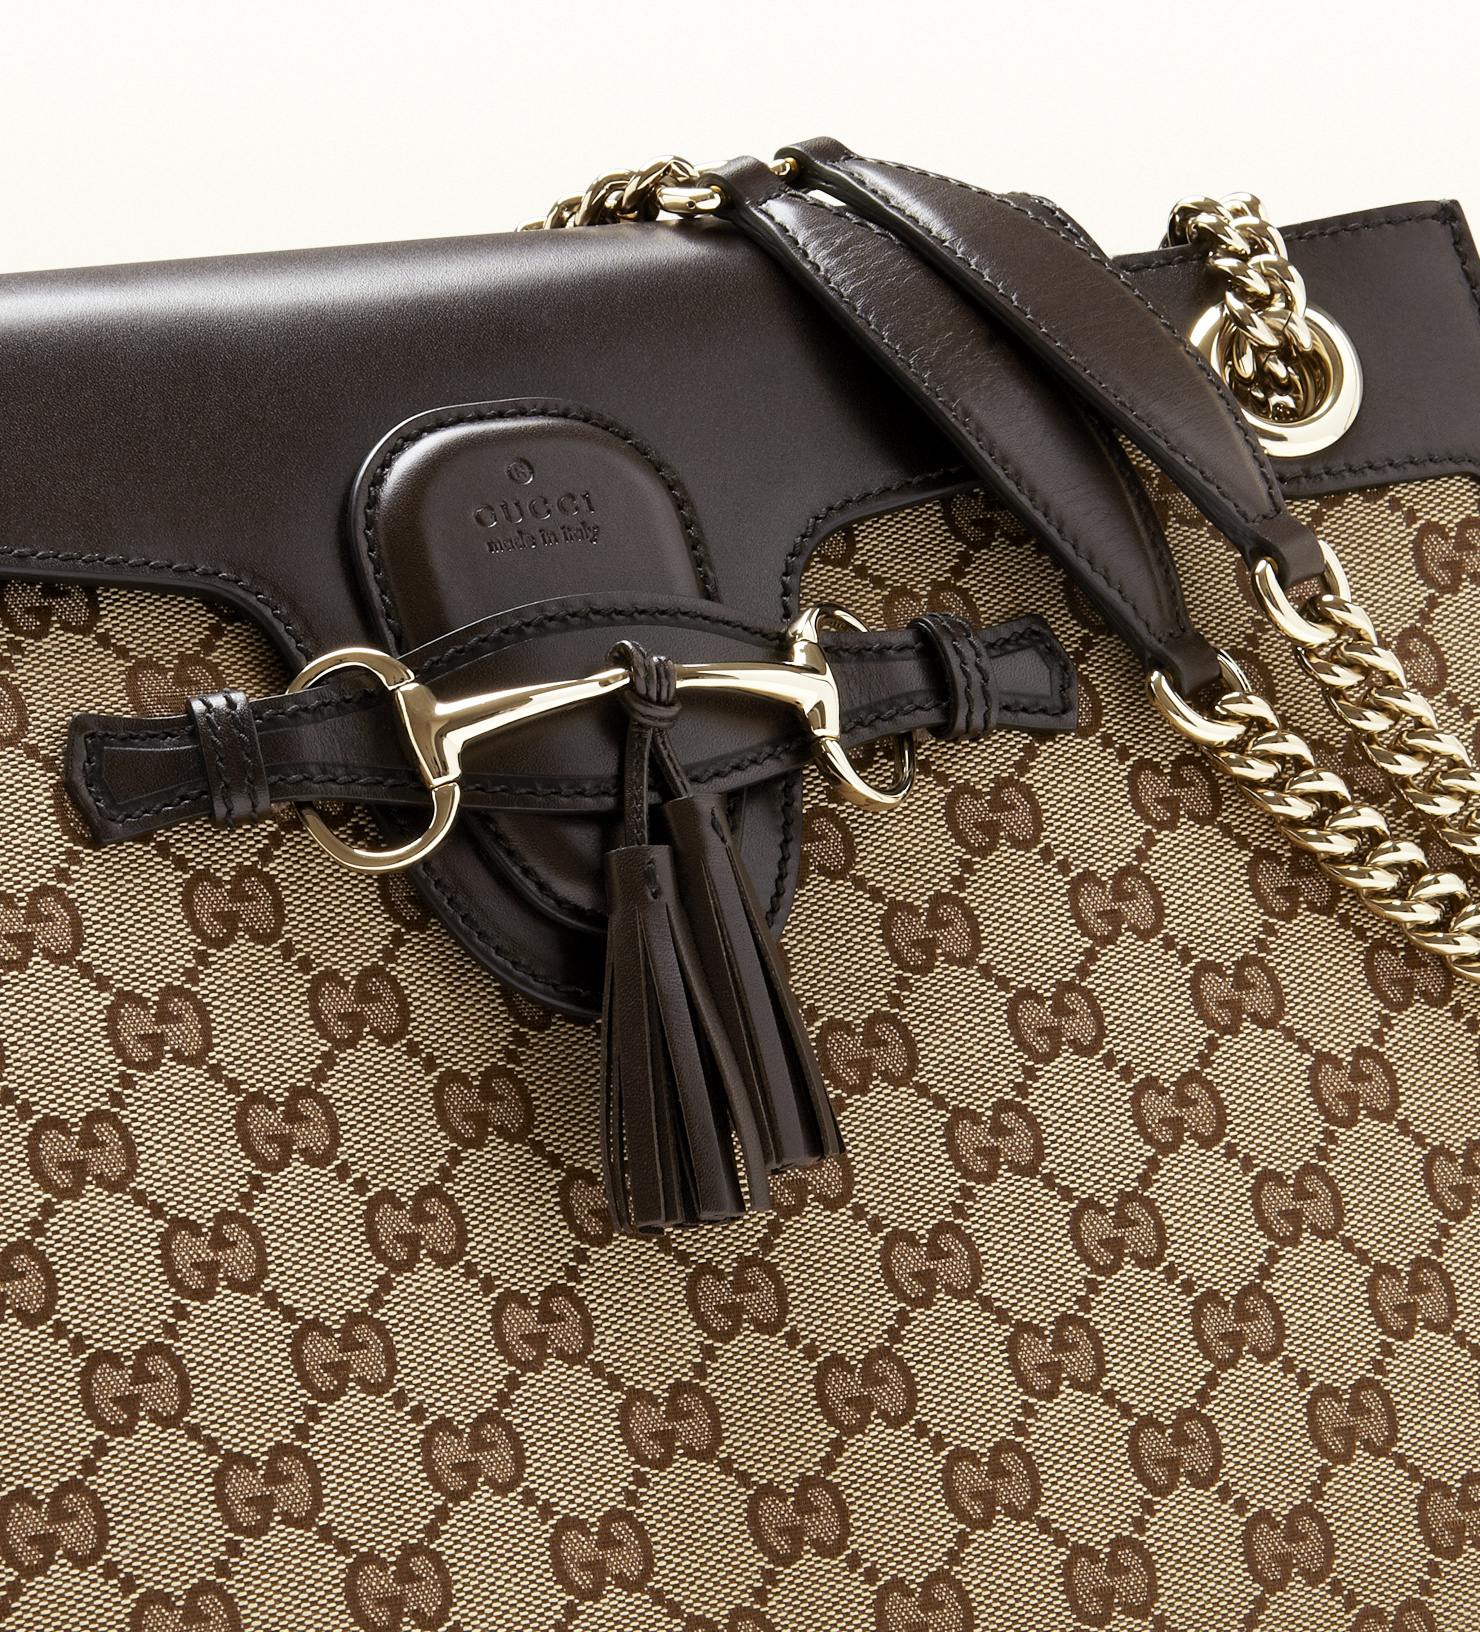 bf40d77aaf1b Gucci Emily Original Gg Canvas Chain Shoulder Bag in Brown - Lyst